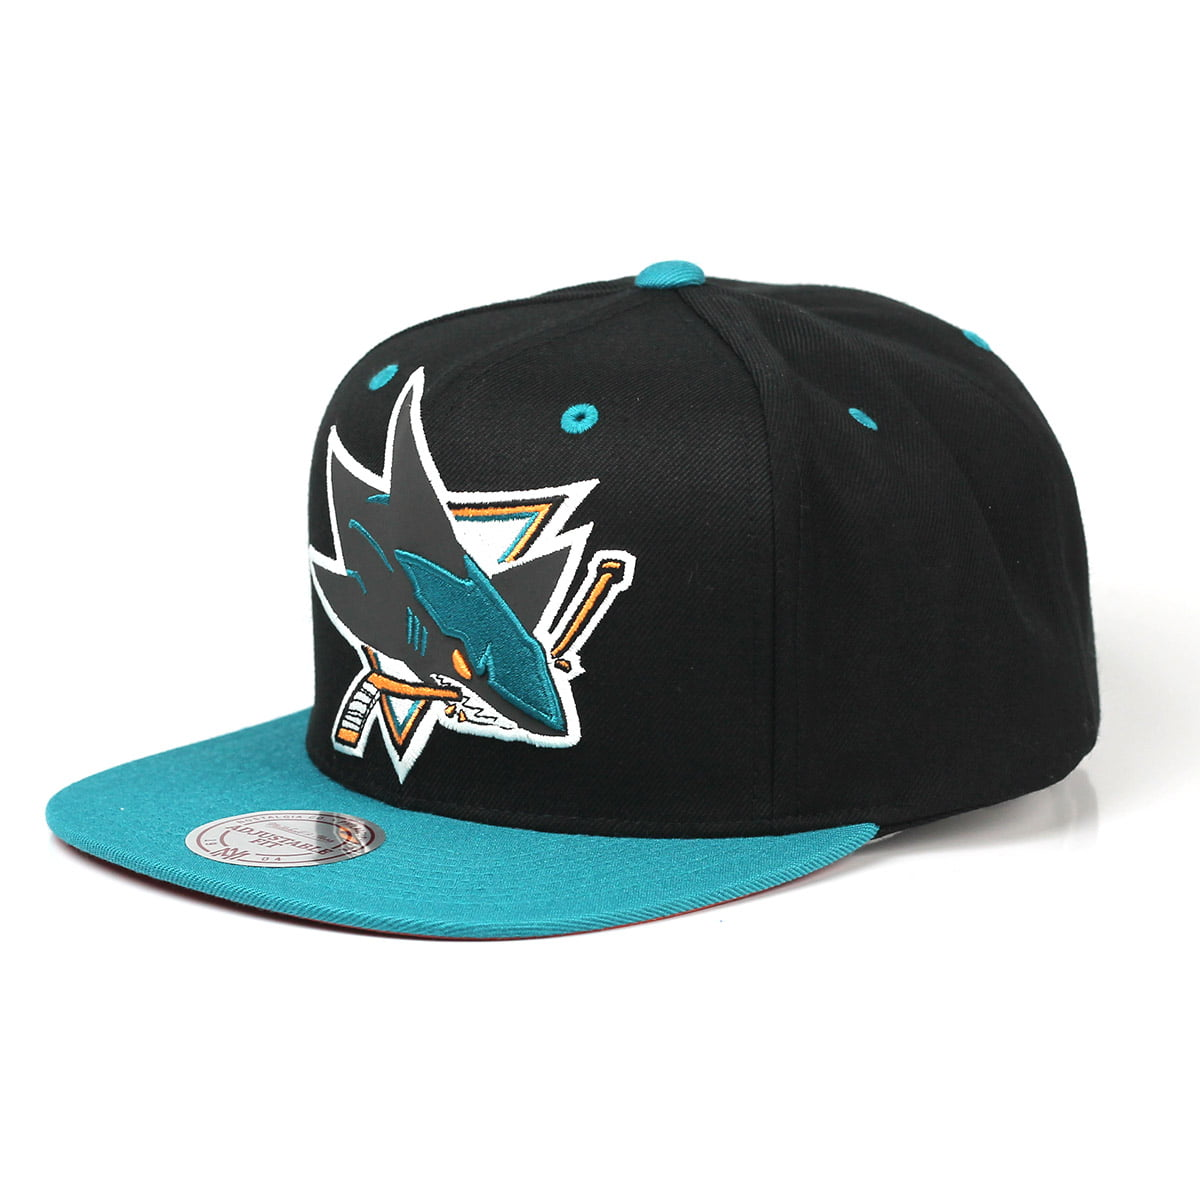 Bone San Jose Sharks Mitchell and Ness snapback refletivo